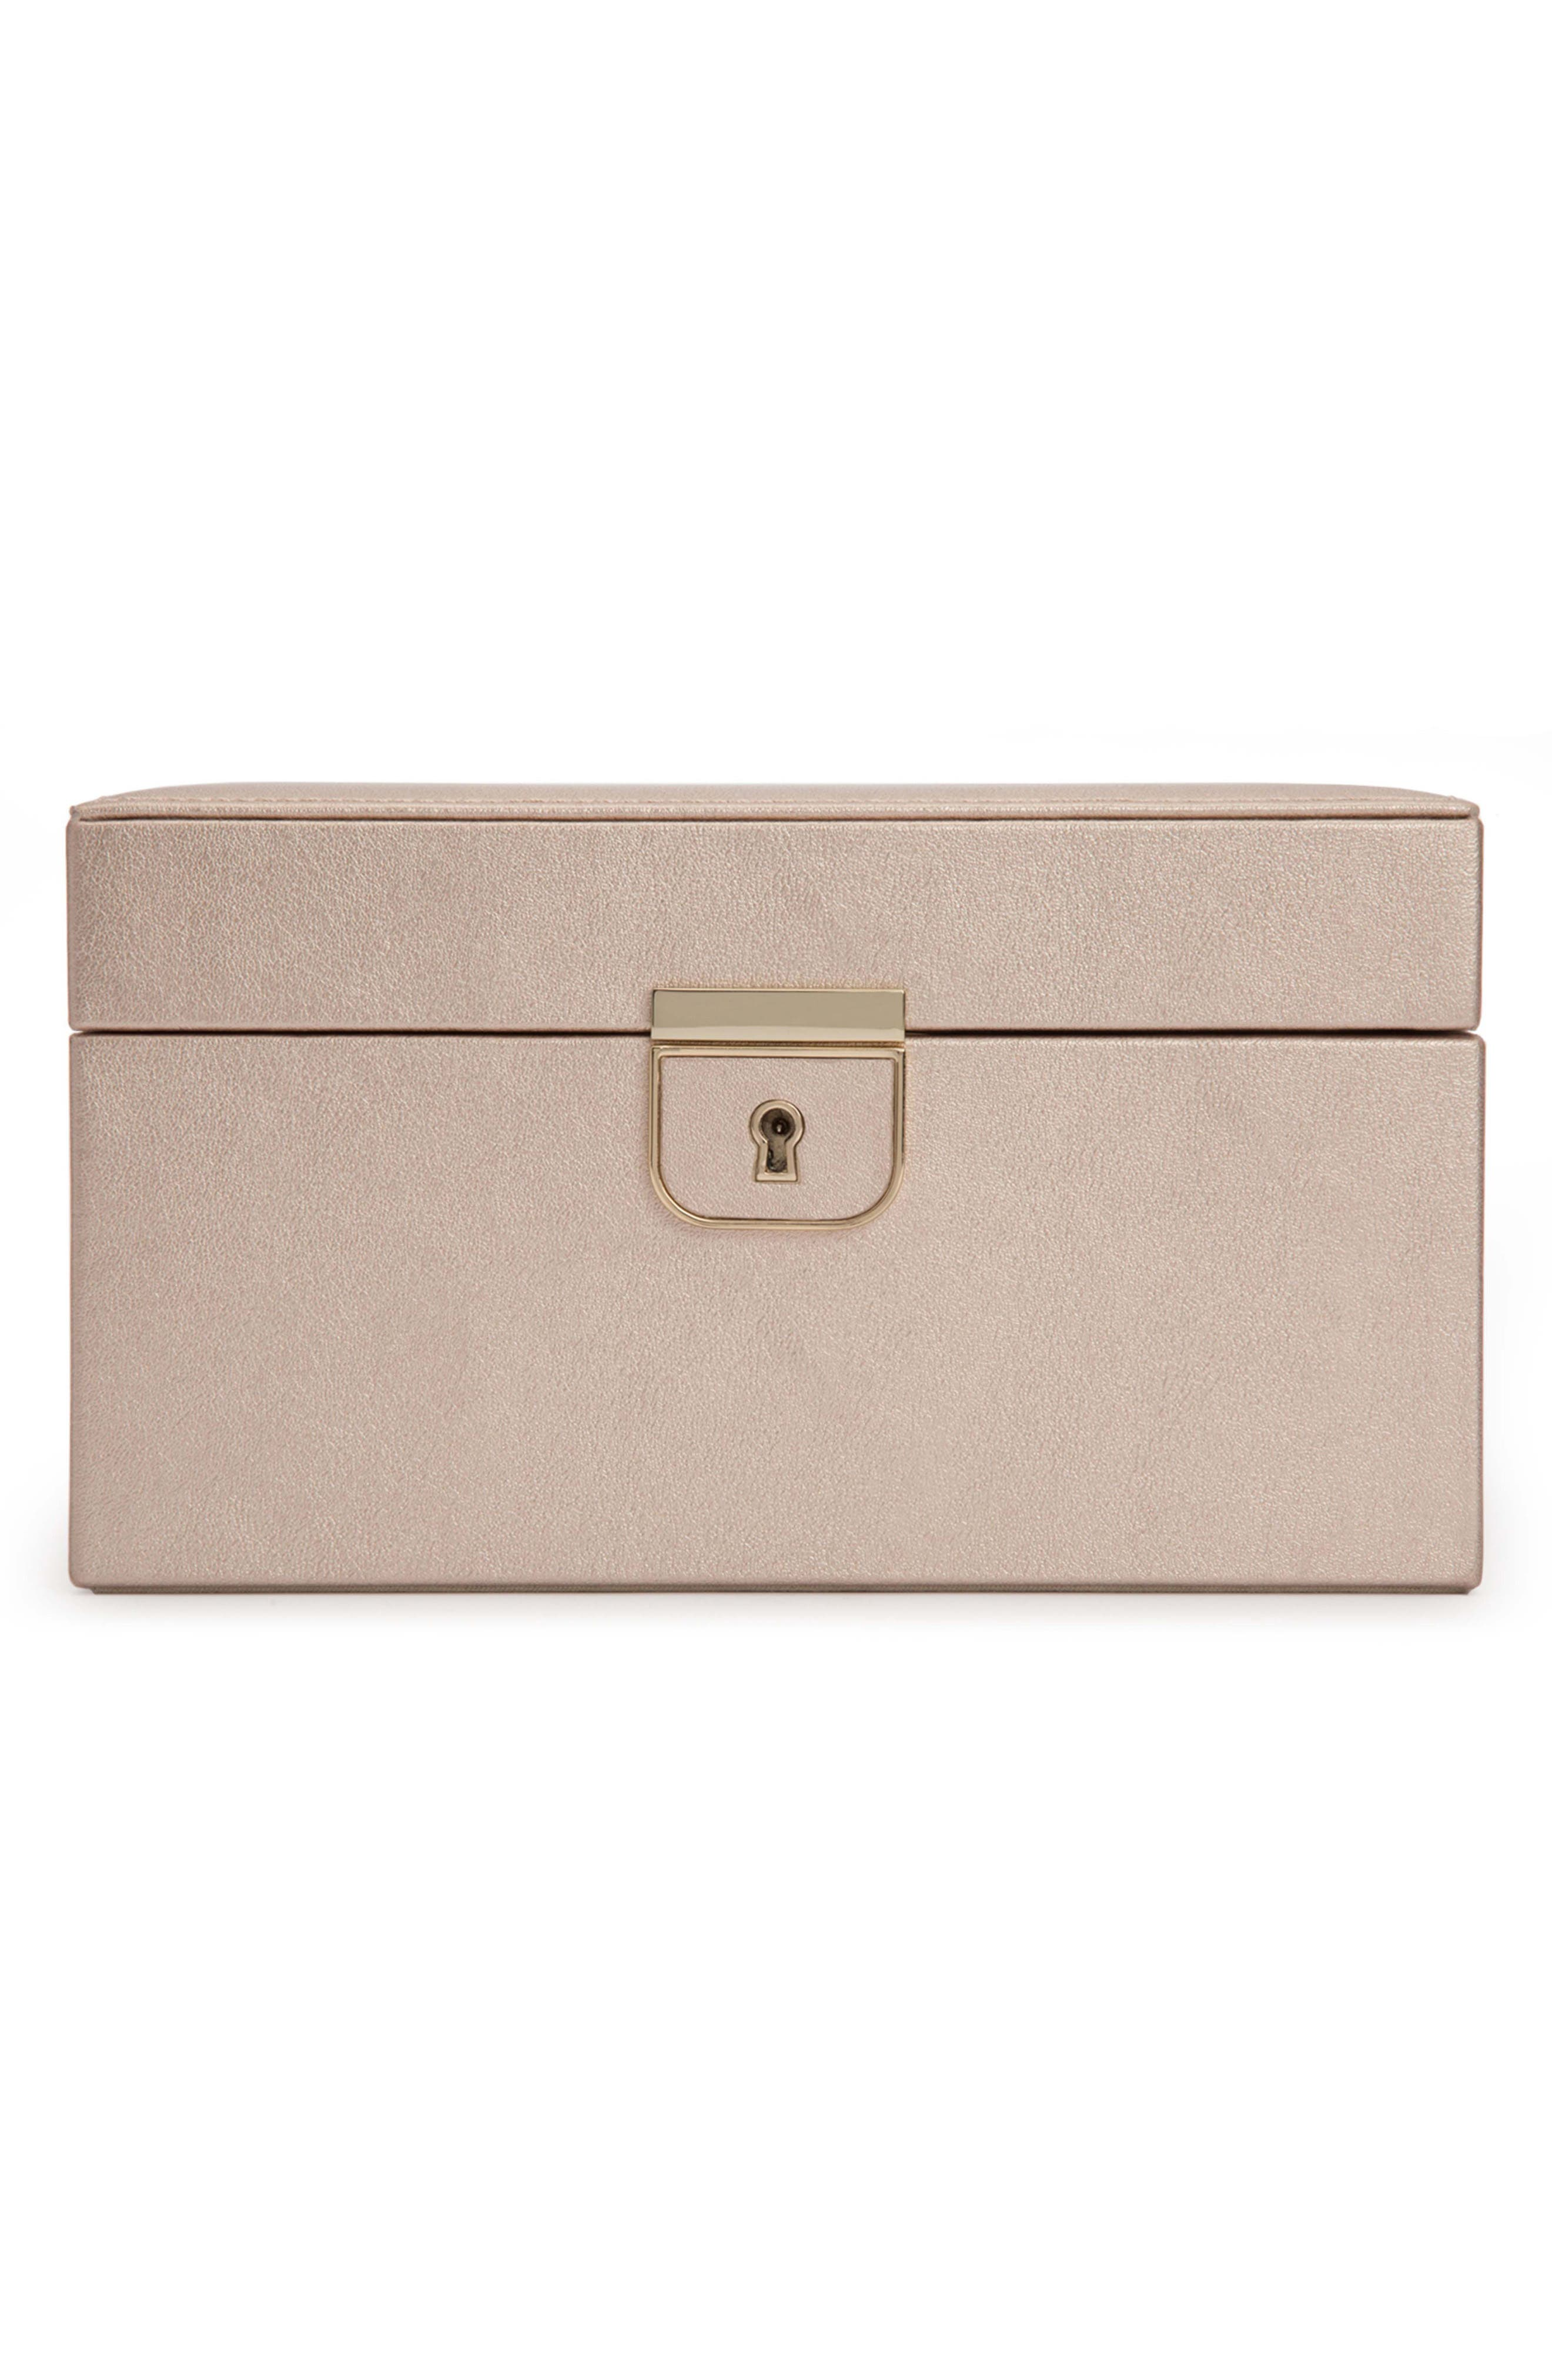 Palermo Small Jewelry Box,                         Main,                         color, ROSE GOLD